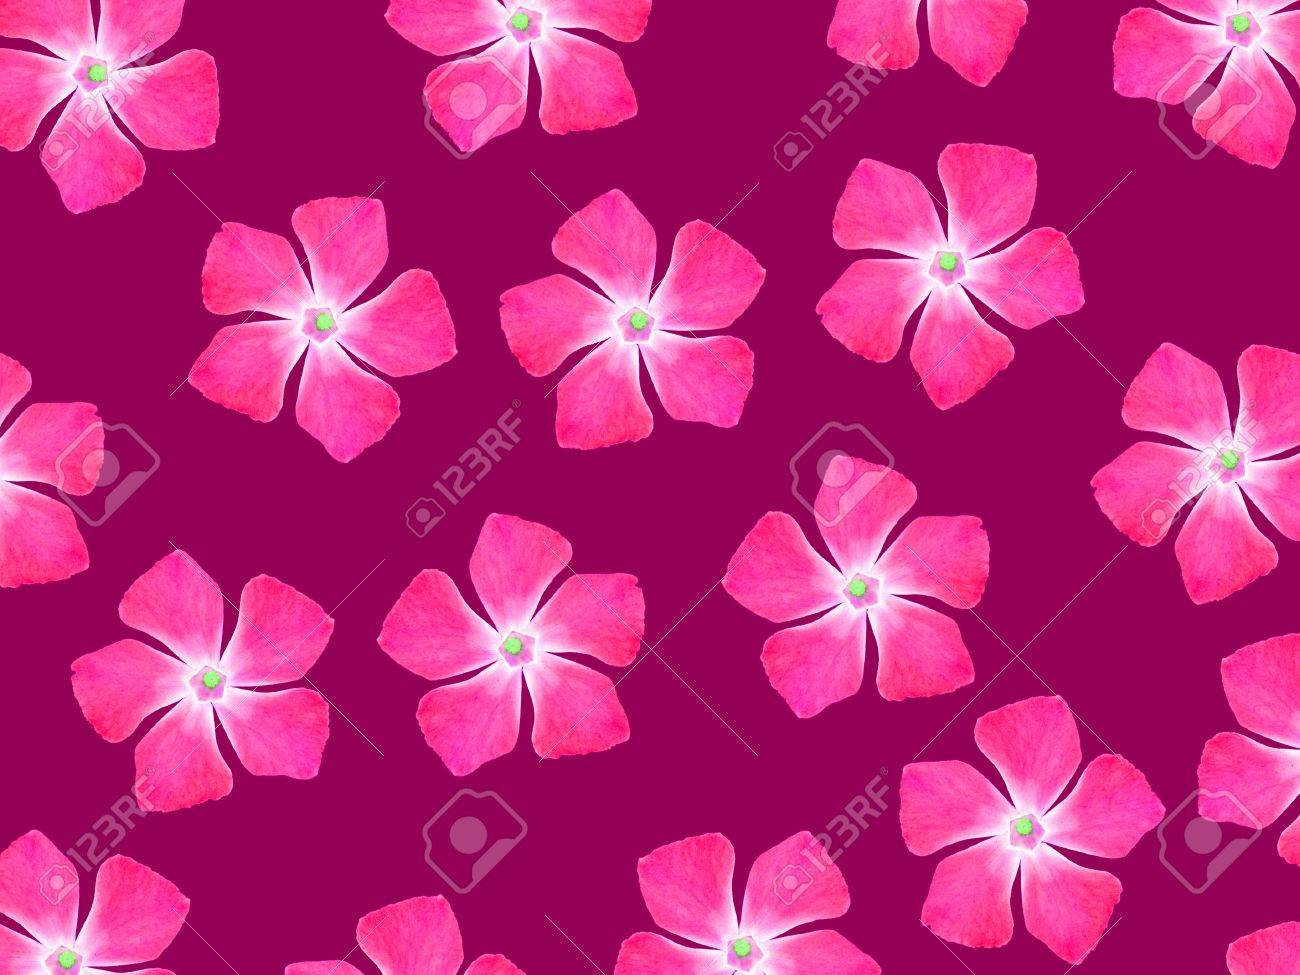 Pink Flowers Over Redish Purple Backdrop Stock Photo Picture And